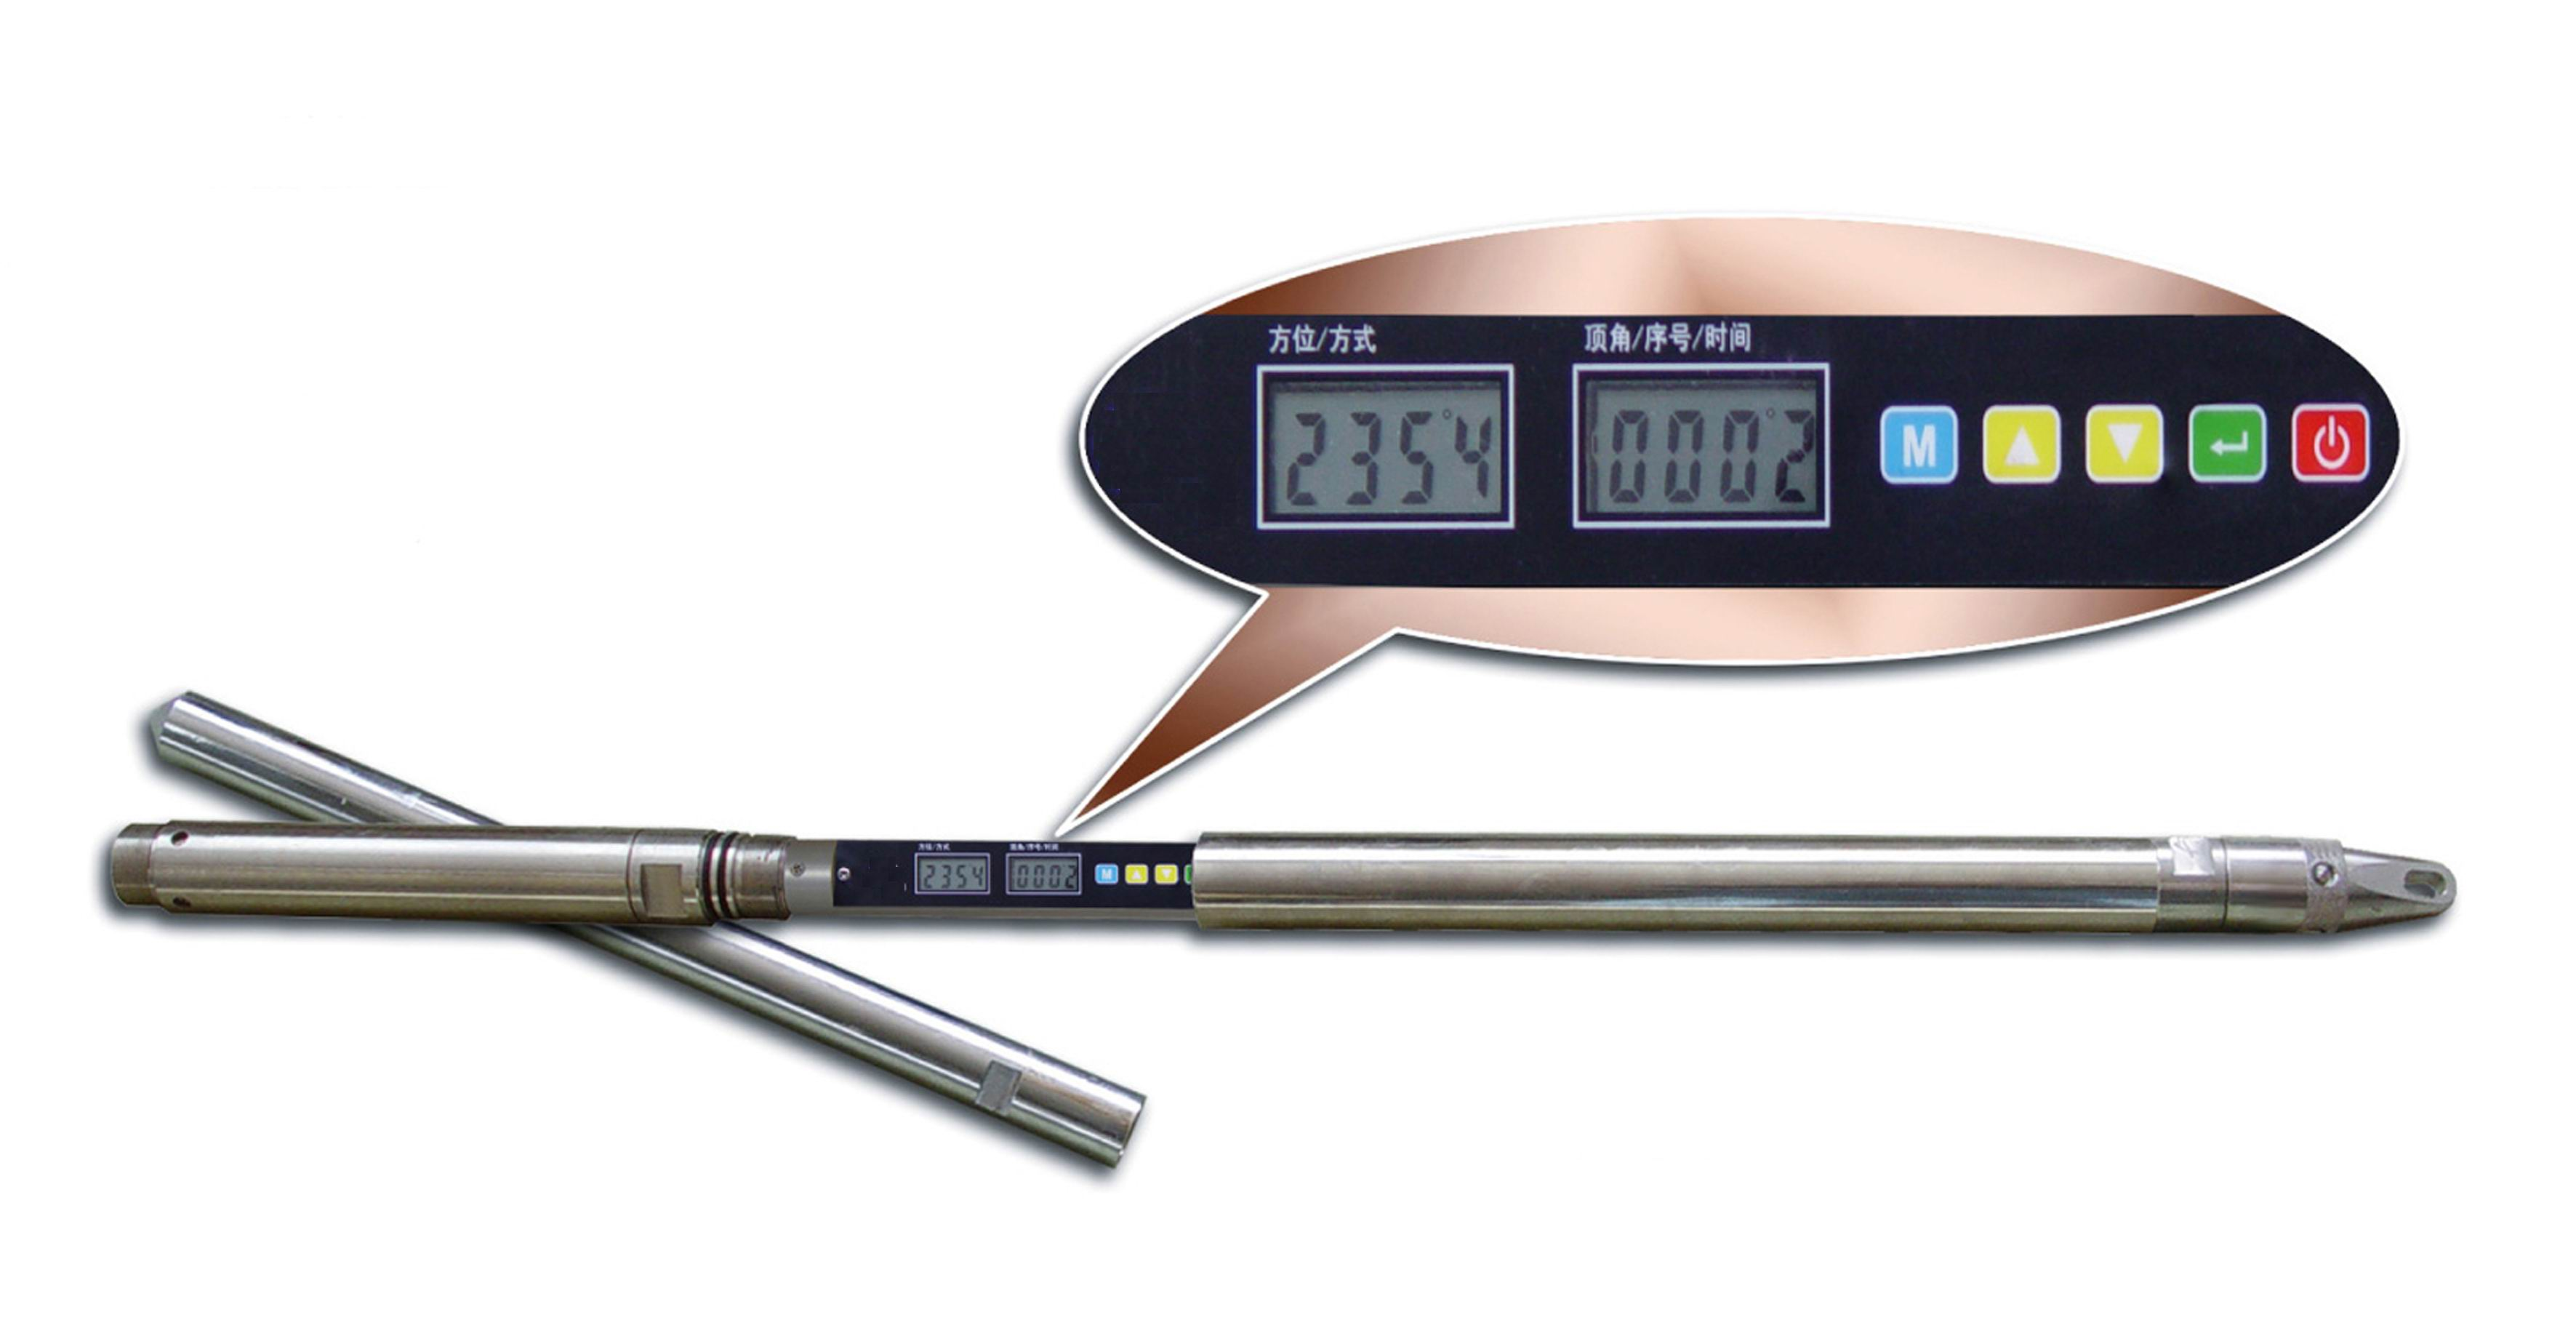 GDP-2D Small-bore Digital Compass inclinometer